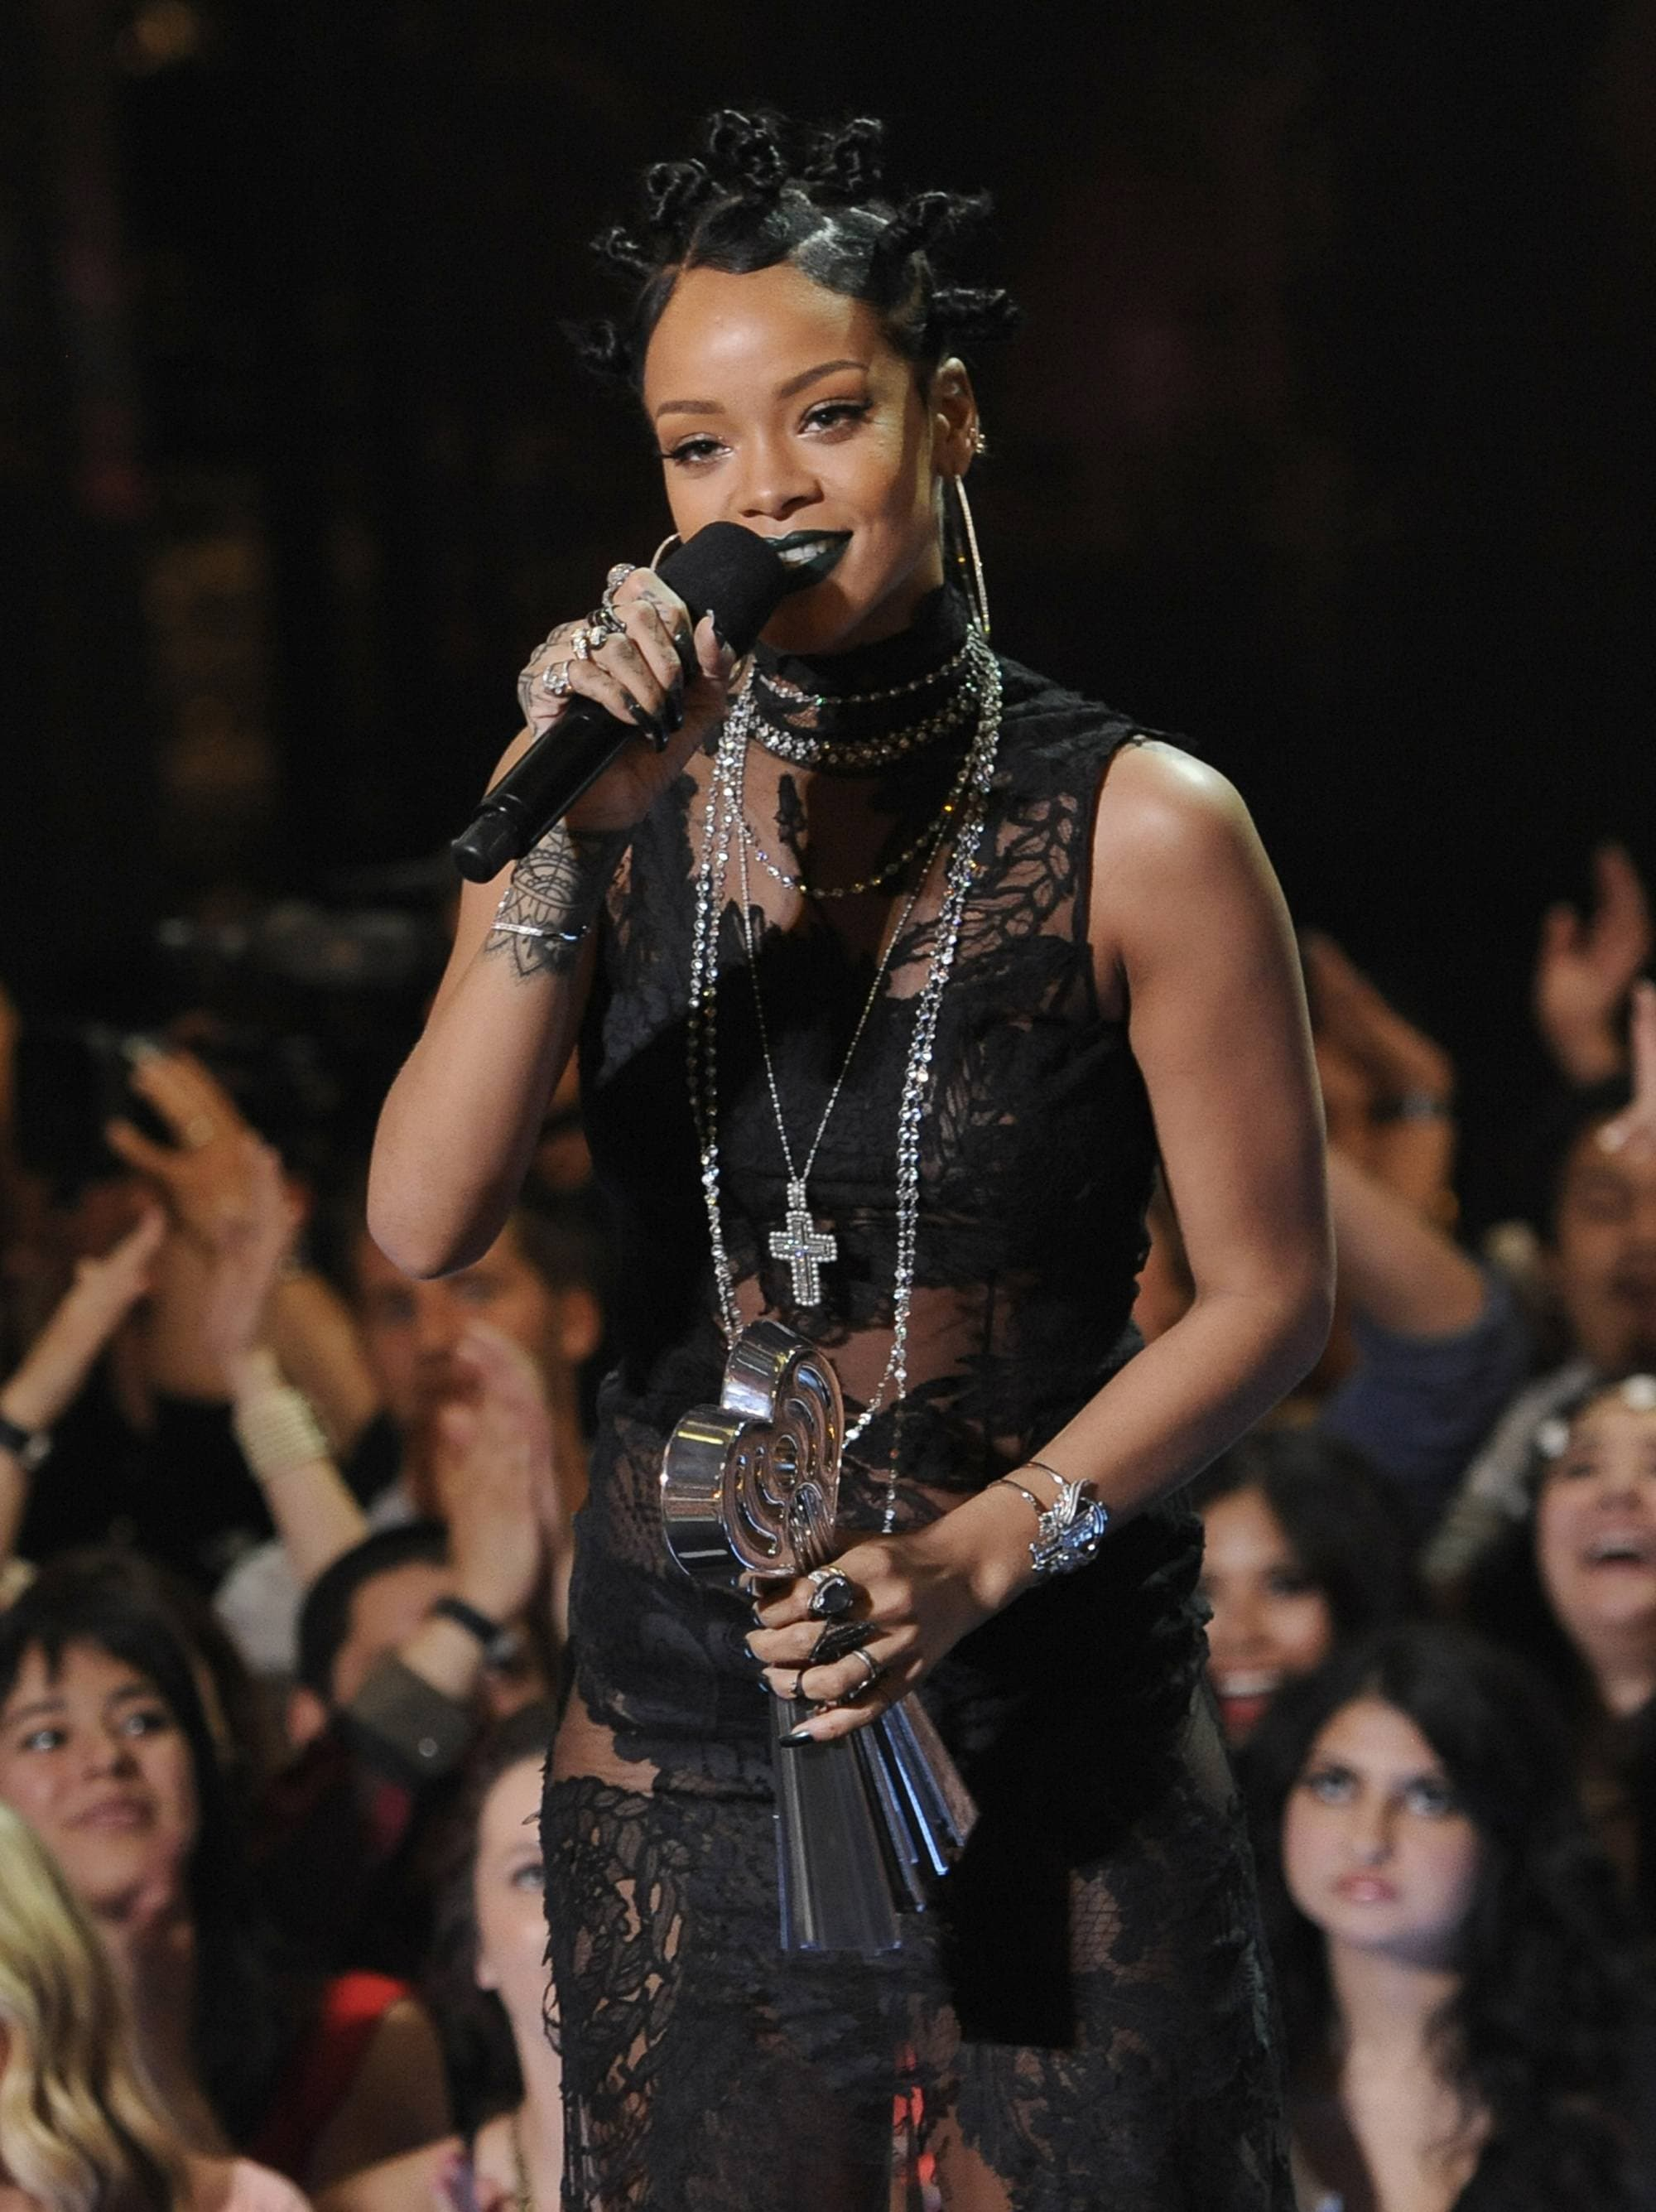 close up shot of rihanna at the iheartradio music awards with bantu knot hairstyle, wearing all black and holding award